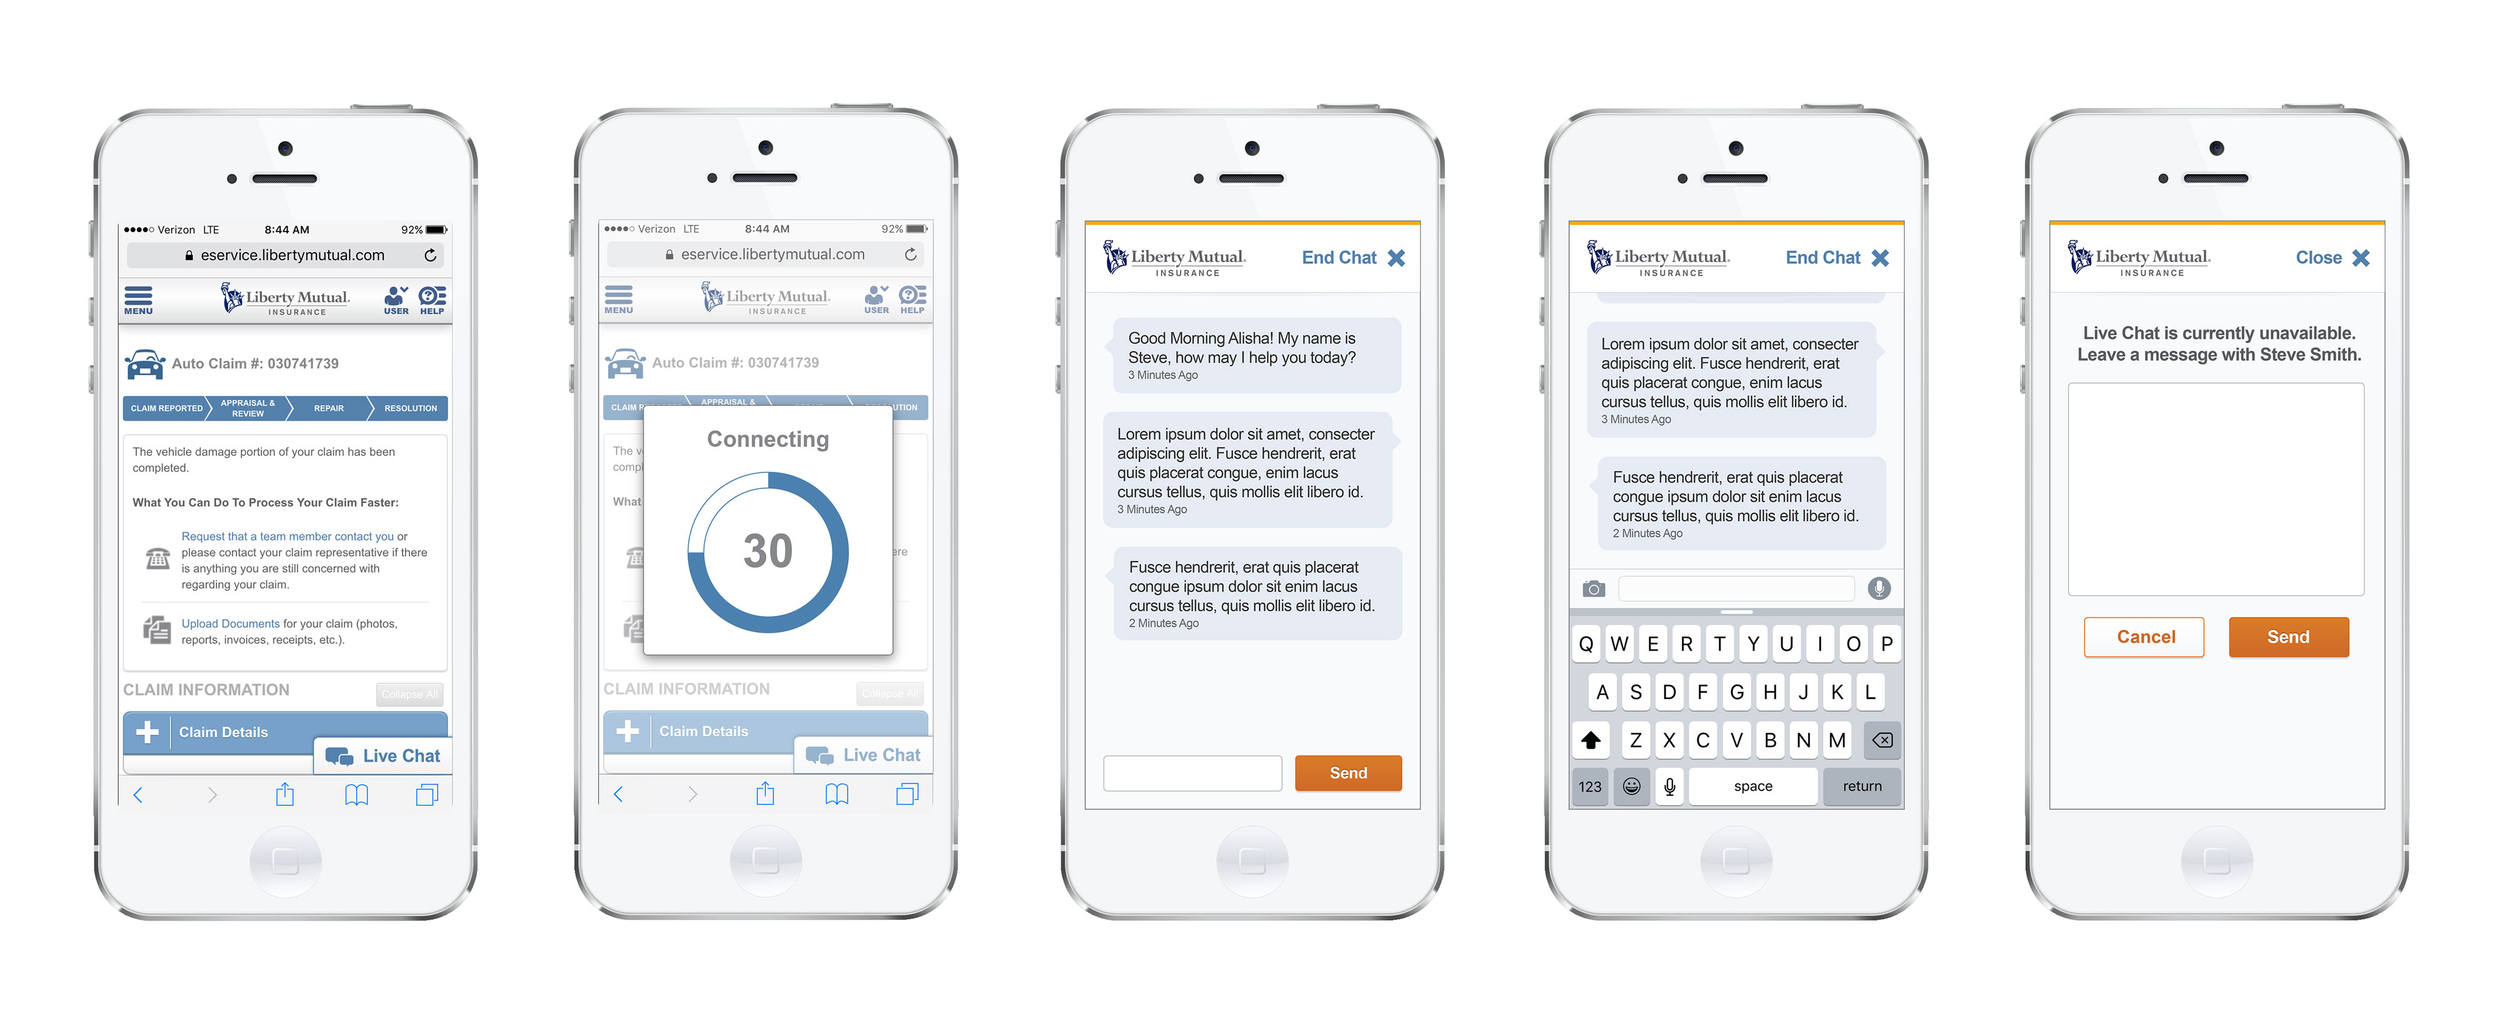 Liberty Mutual Claims Live Chat - Mobile Experience